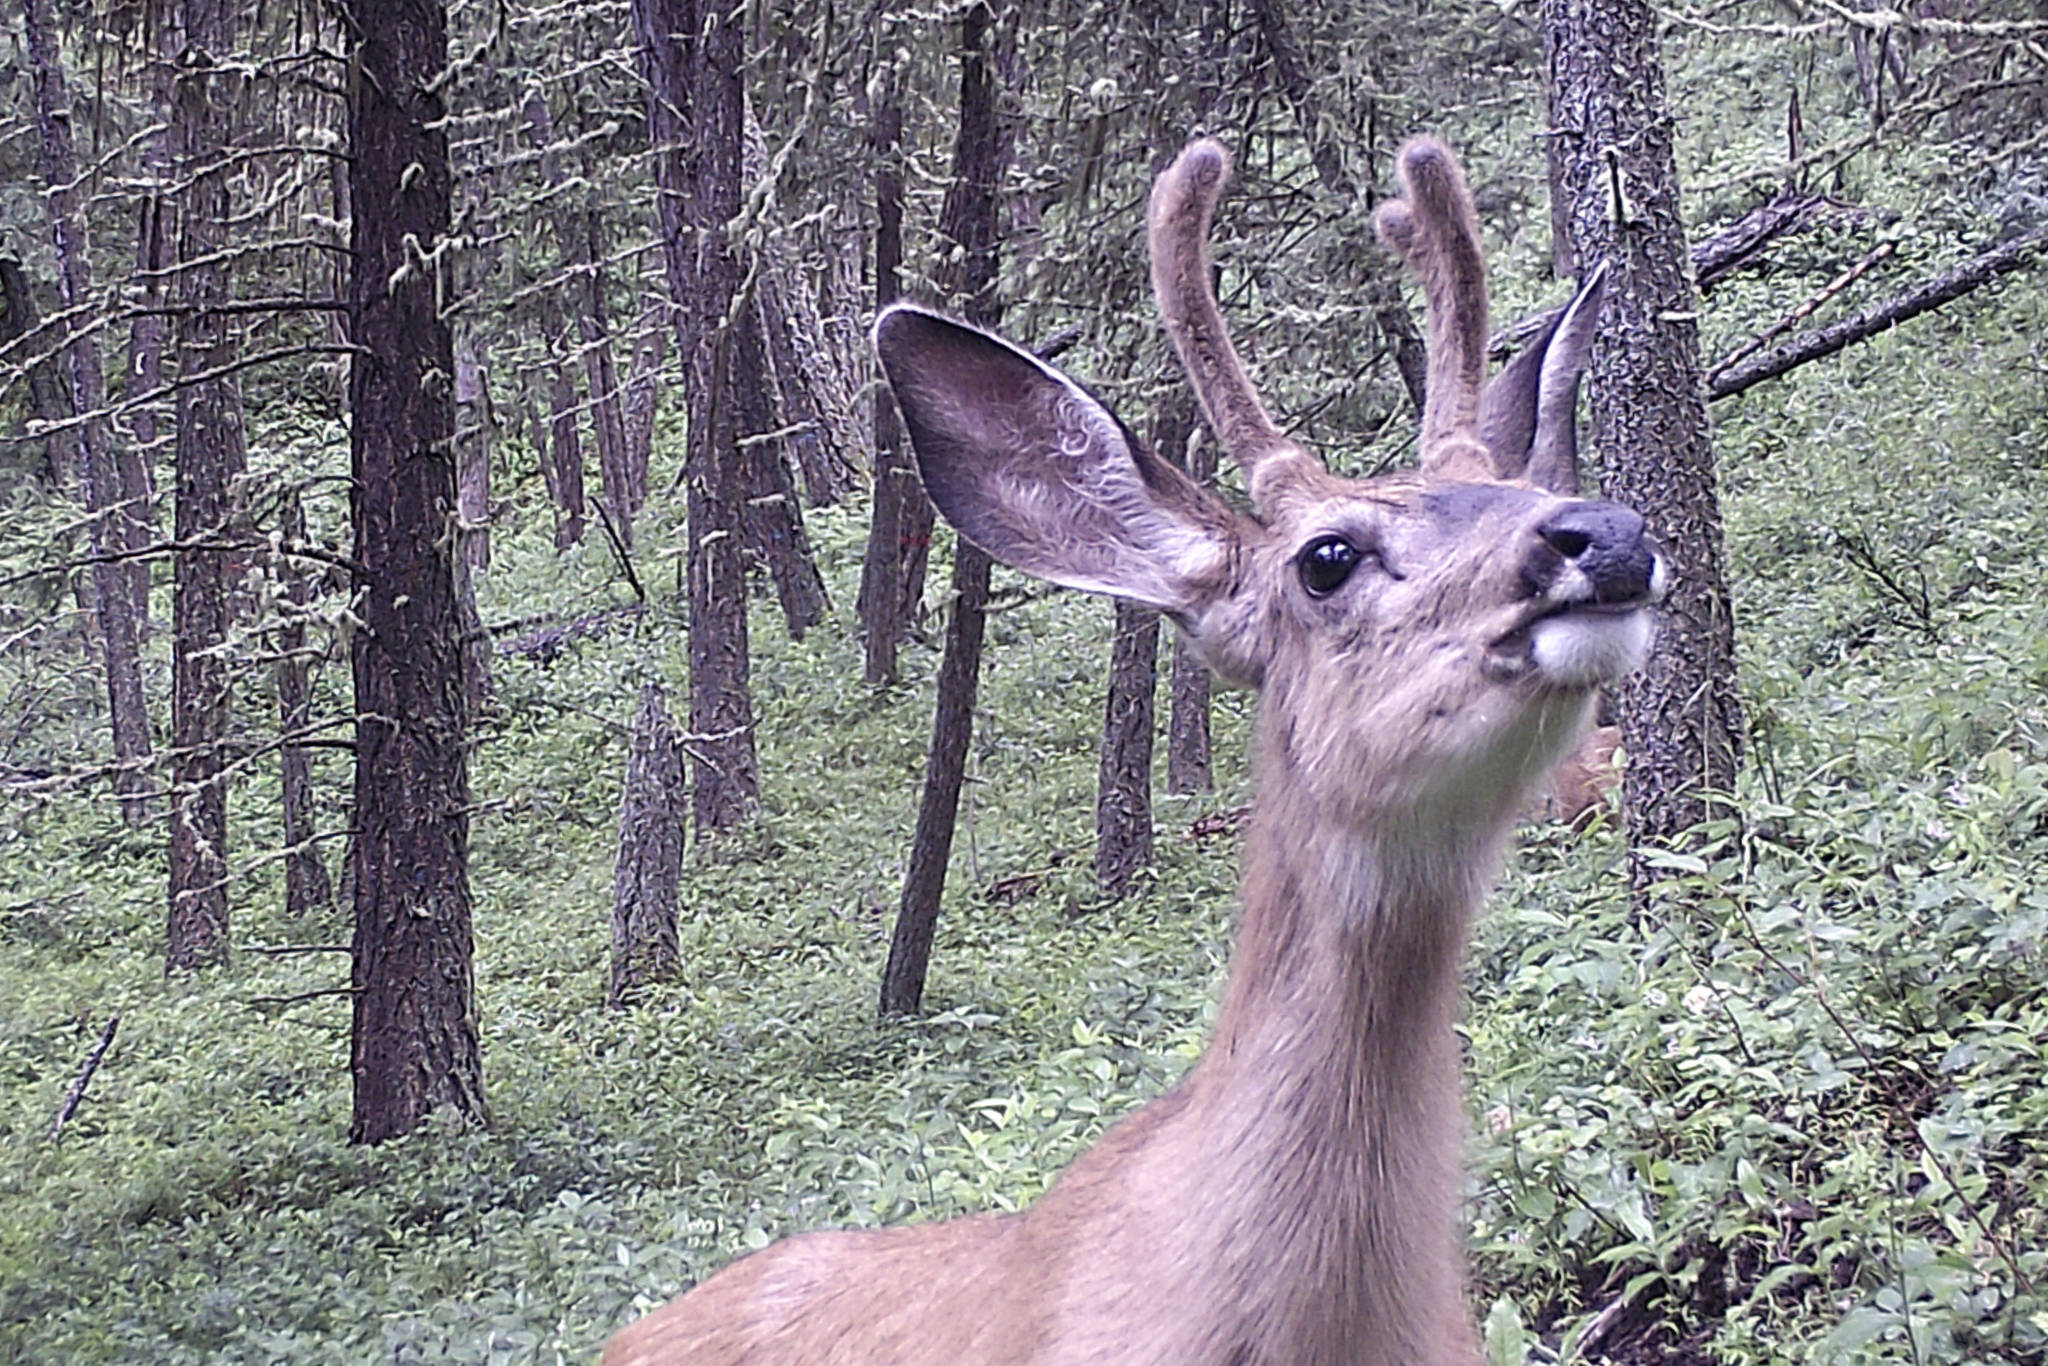 While chronic wasting disease has not yet been detected in B.C., 64 white-tailed deer, mule deer and moose in the area around Libby, Montana have been discovered with the disease since June 2019. CWD is also found in Alberta. (Sam Fait photo)